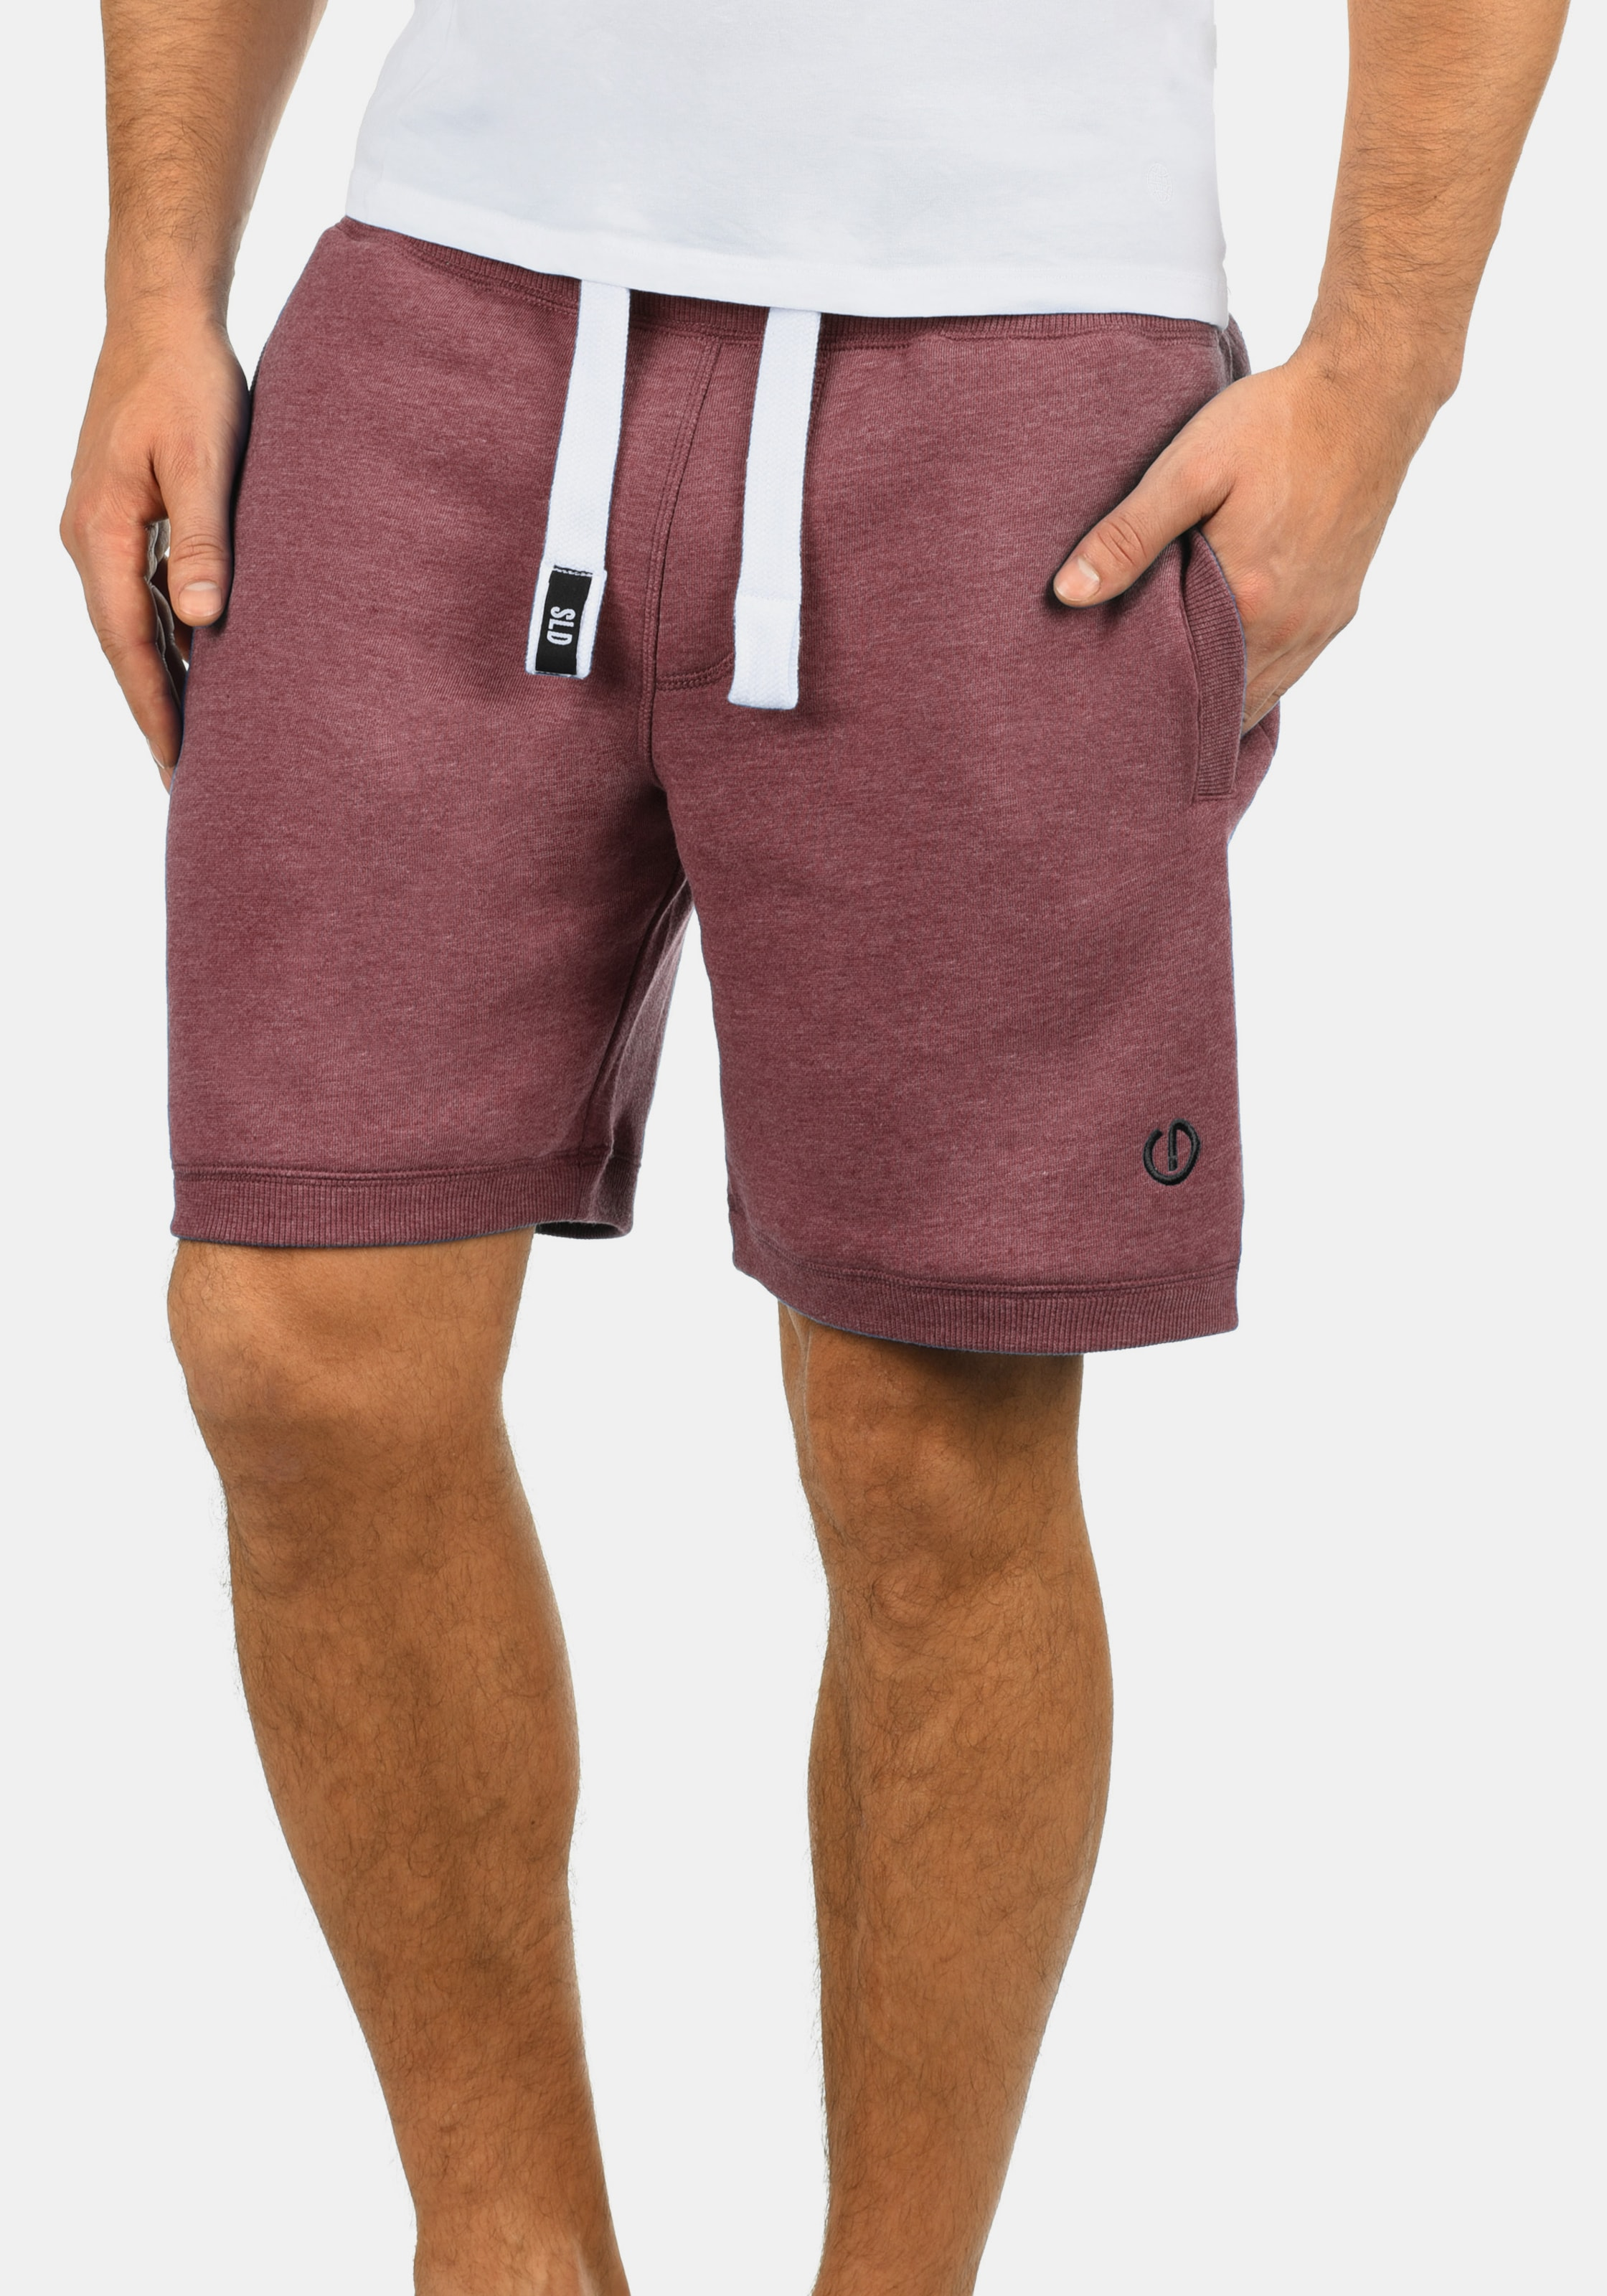 solid Rot solid In Sweatshorts In Rot solid solid Rot In Sweatshorts Sweatshorts 4LR35jA